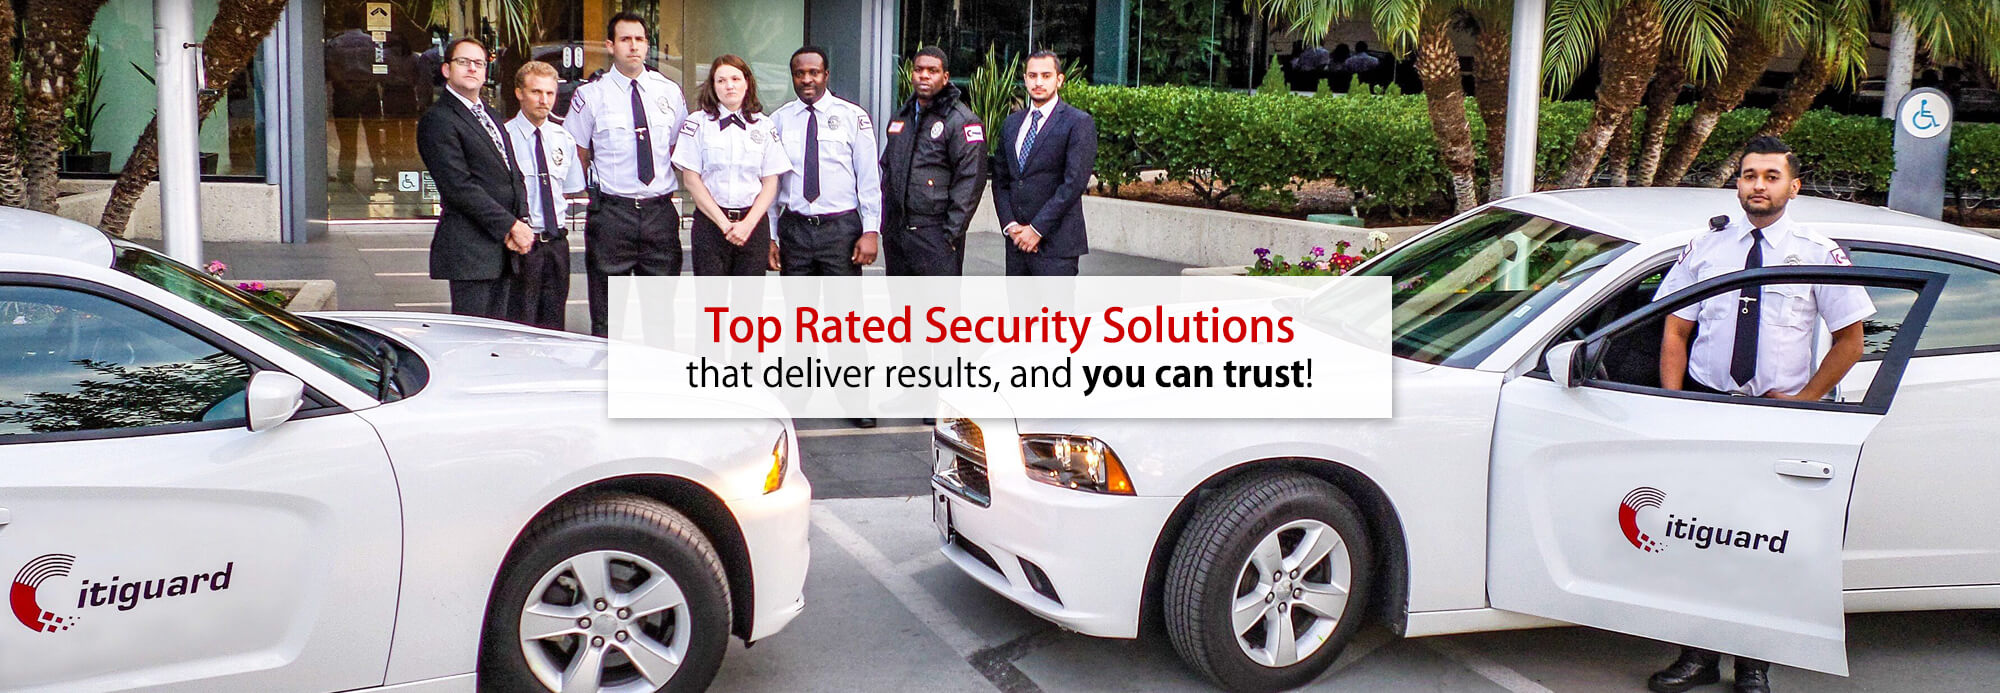 Parking Enforcement Number Los Angeles >> Security Guards Company Los Angeles CA, Security Patrol Service Orange County – Citiguard